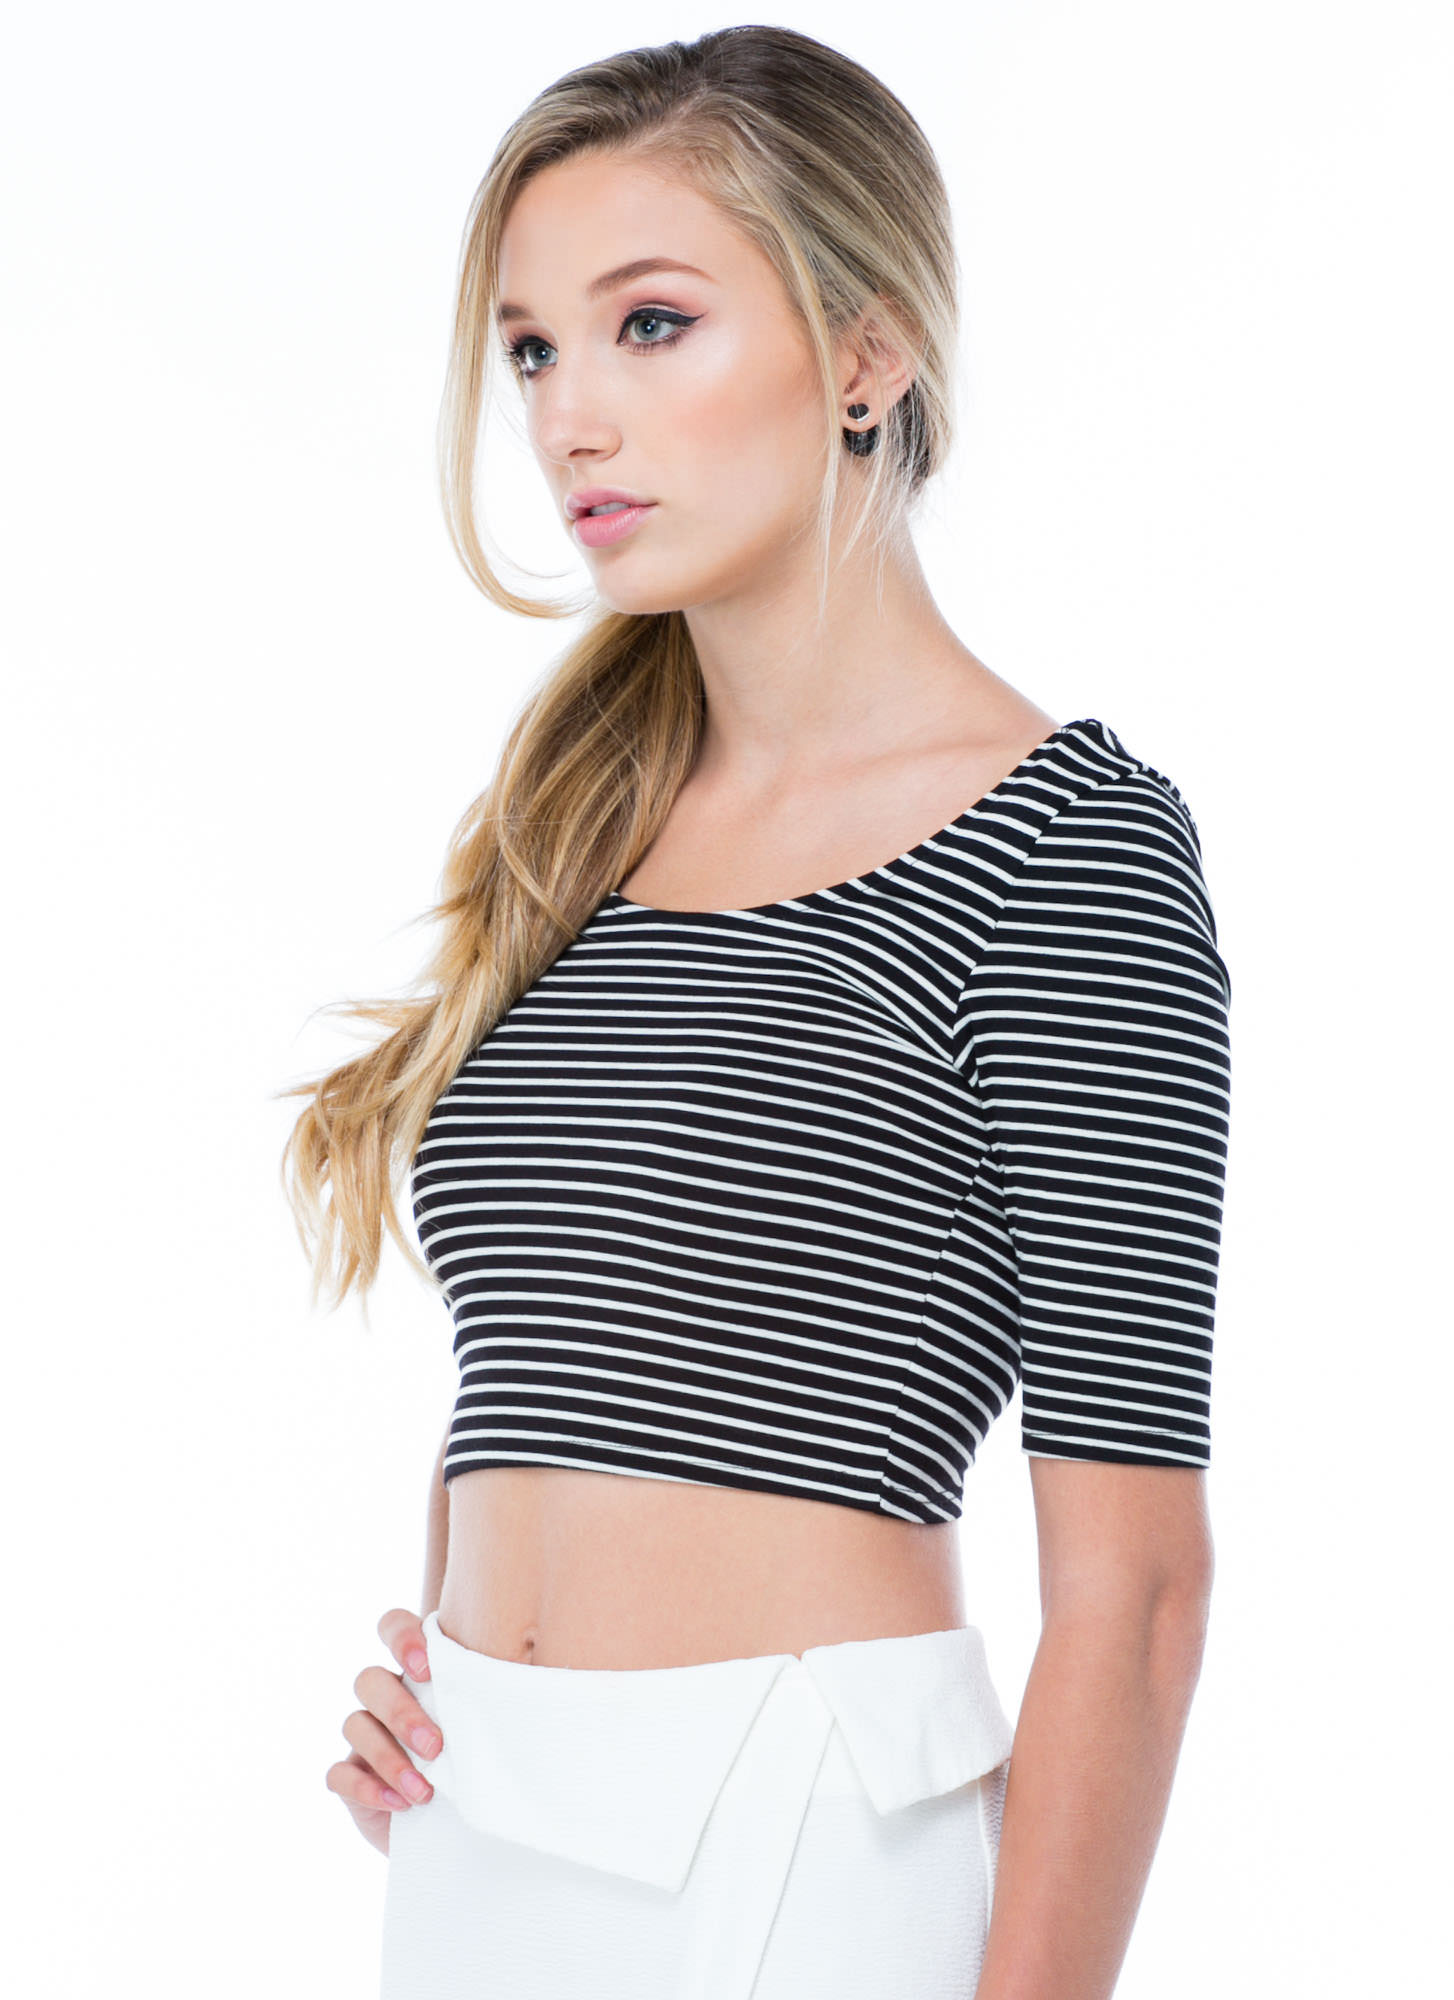 Stripe That Three-Quarter Cropped Top BLKWHT